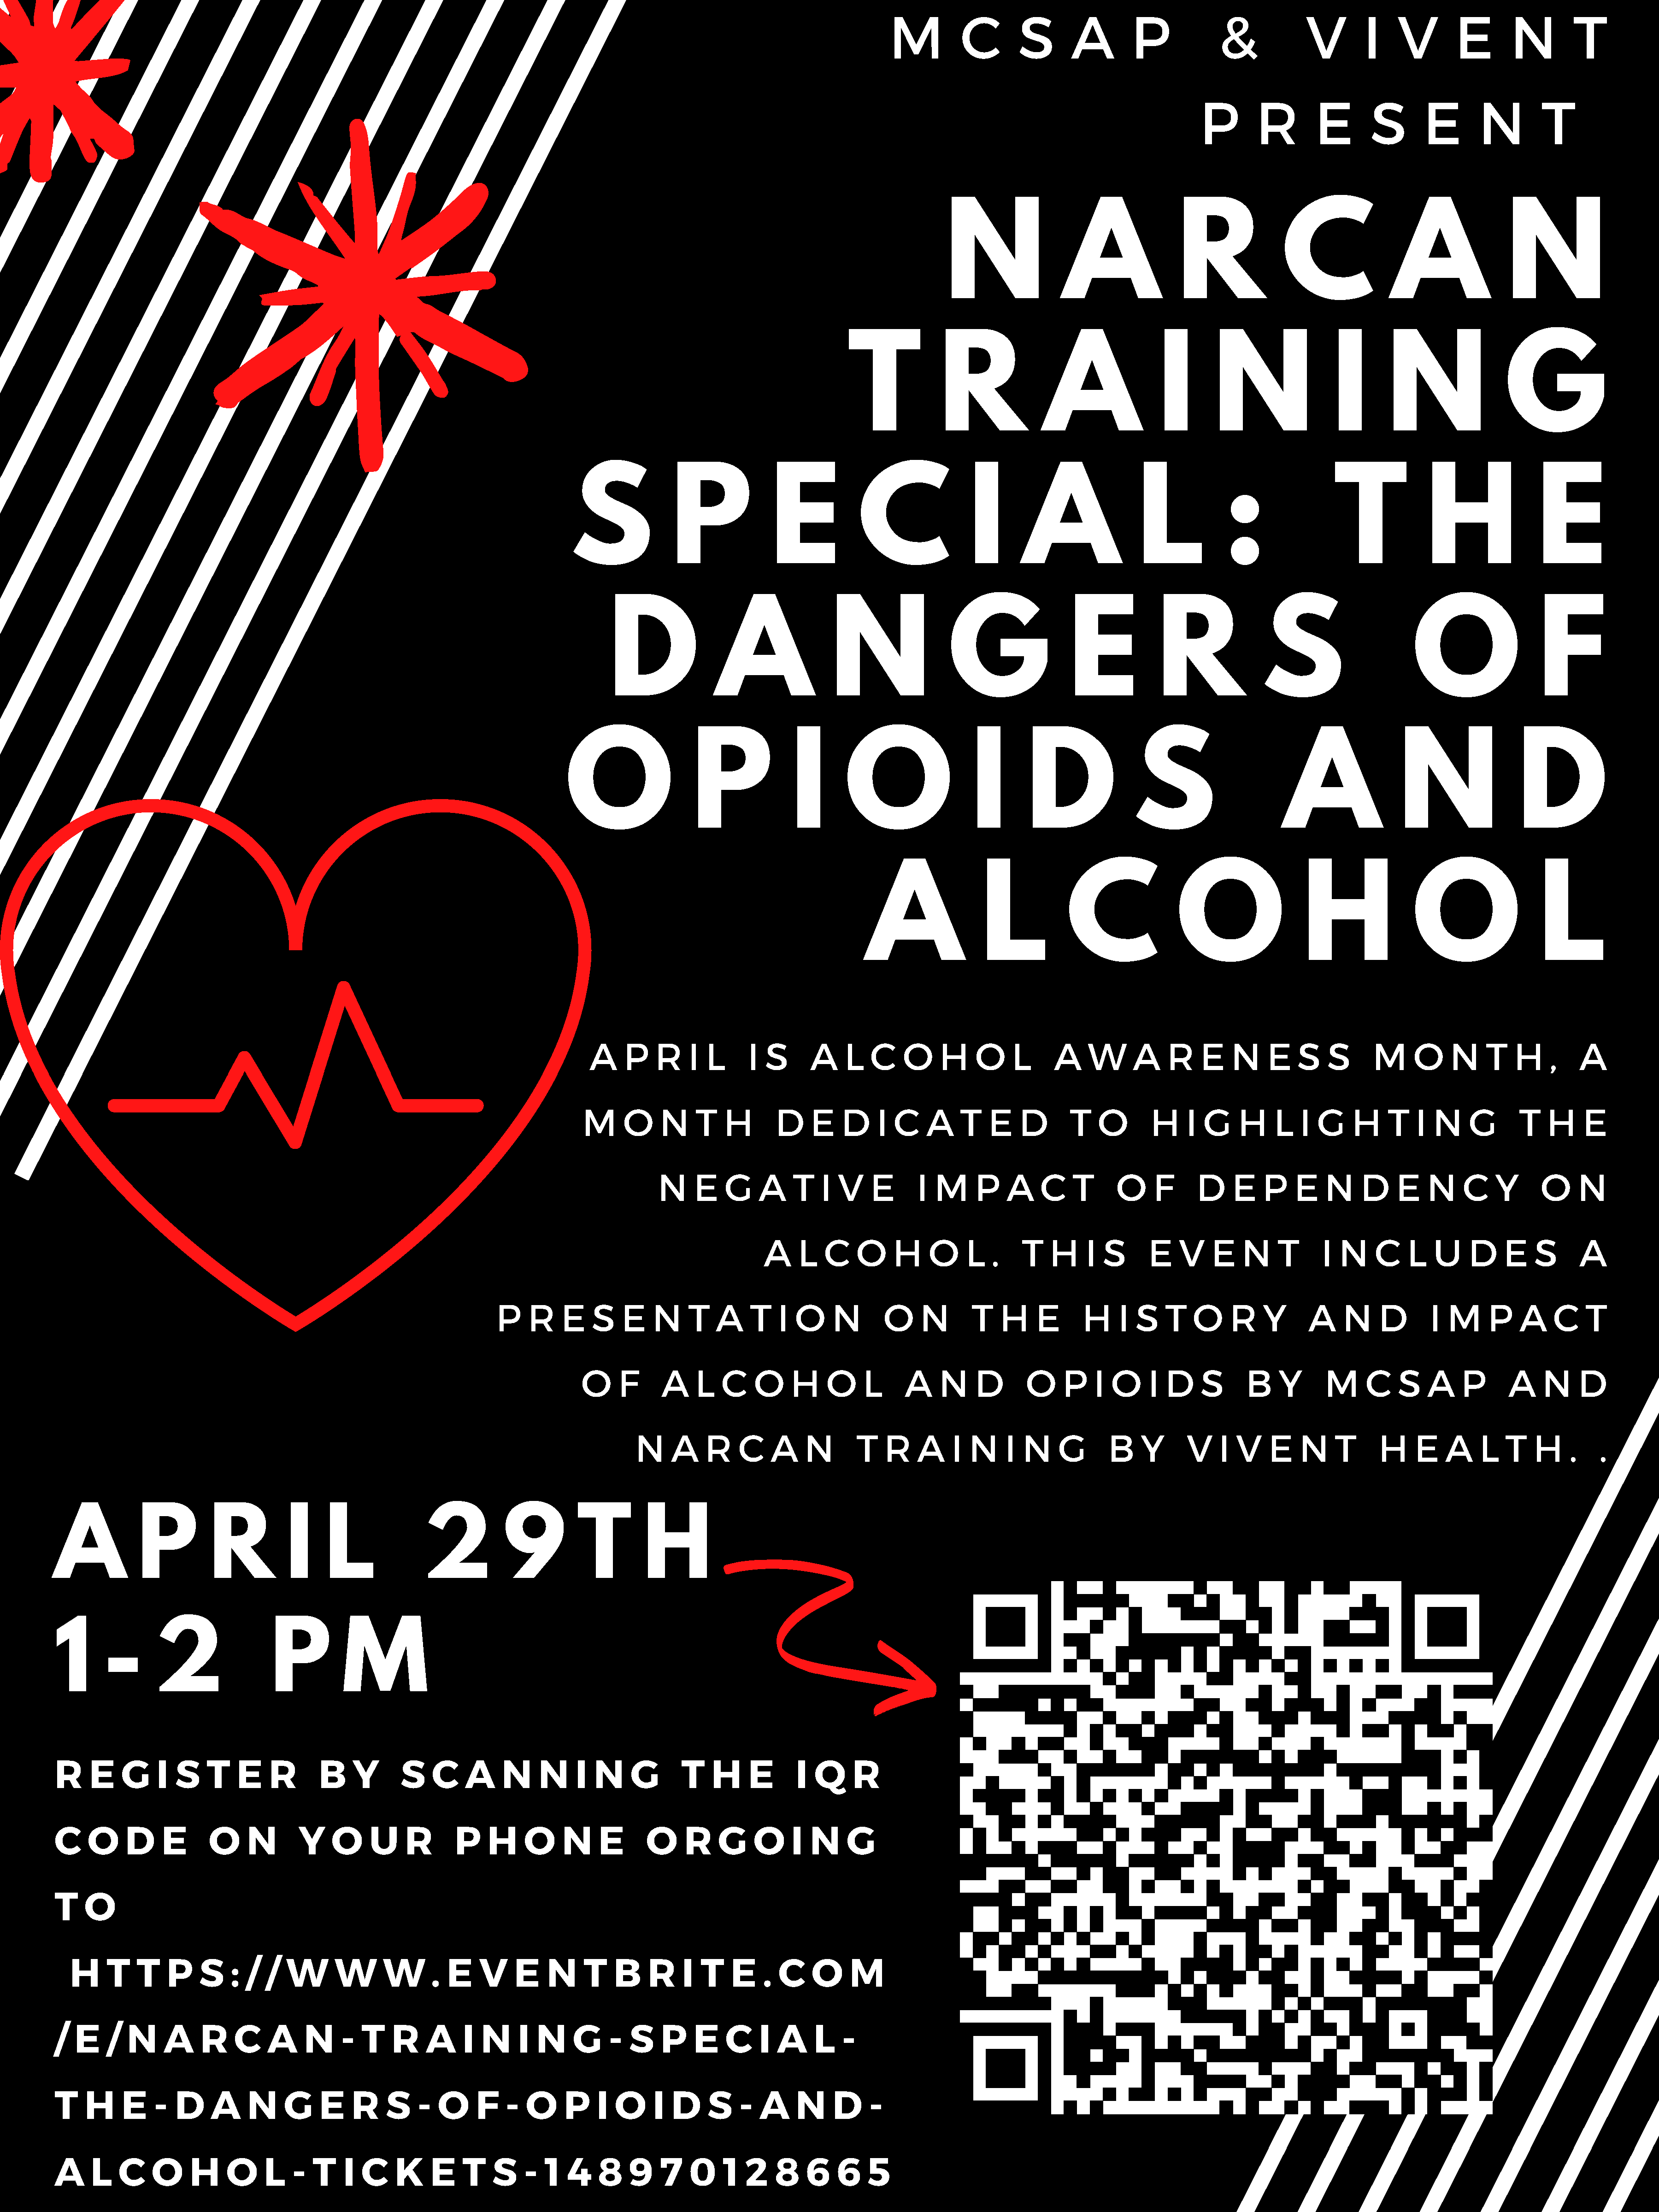 Narcan Training Special: The Dangers of Opioids and Alcohol